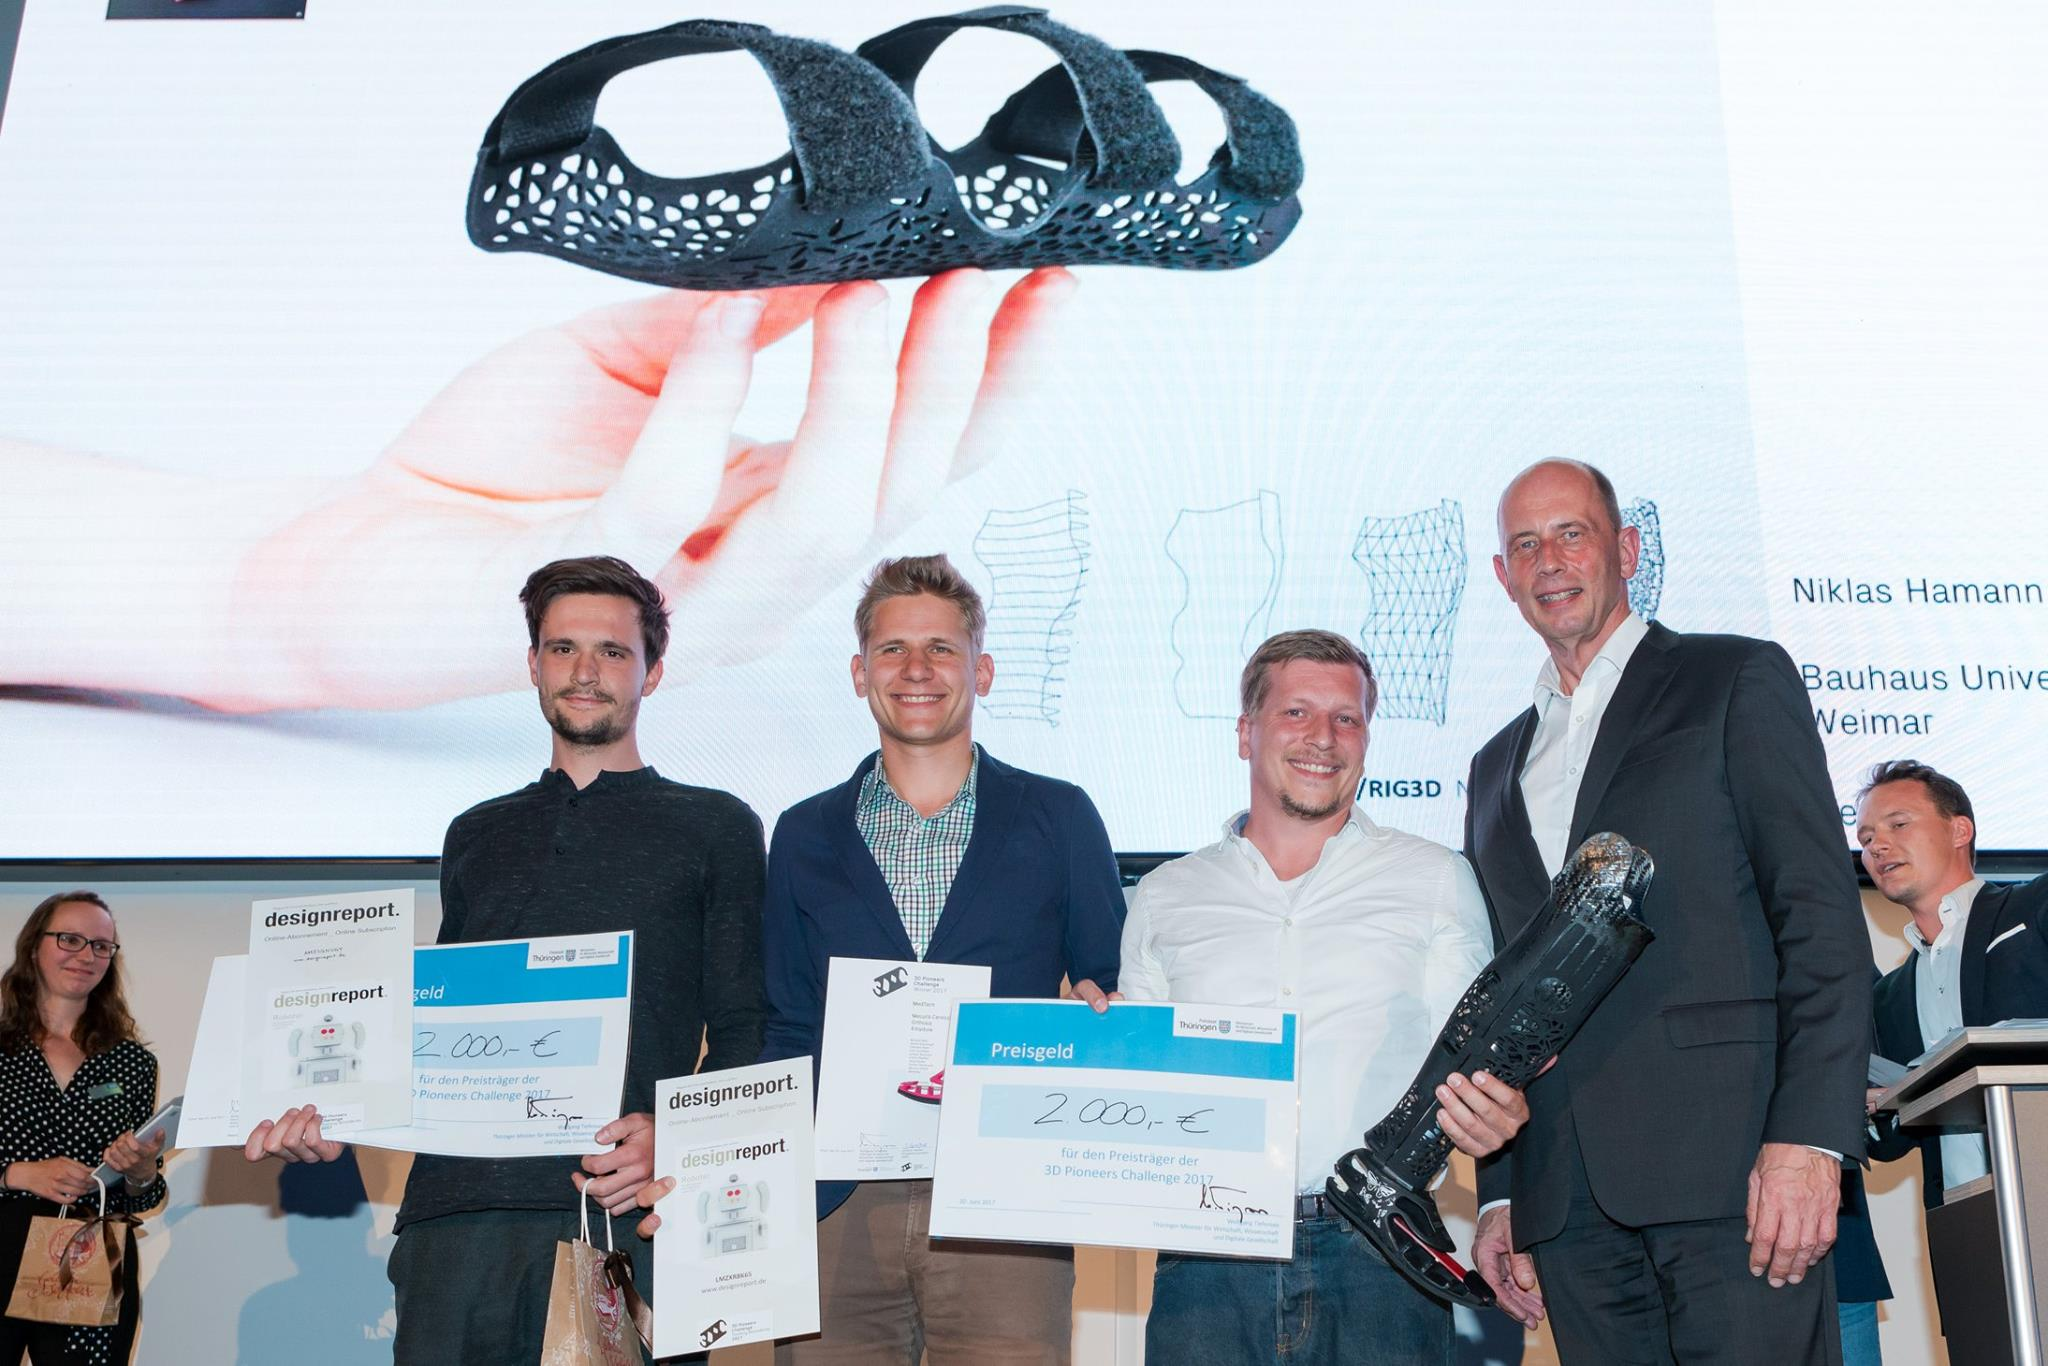 Winners of the MedTech category Mecuris and Niklas Haman. Photo via 3DPC.